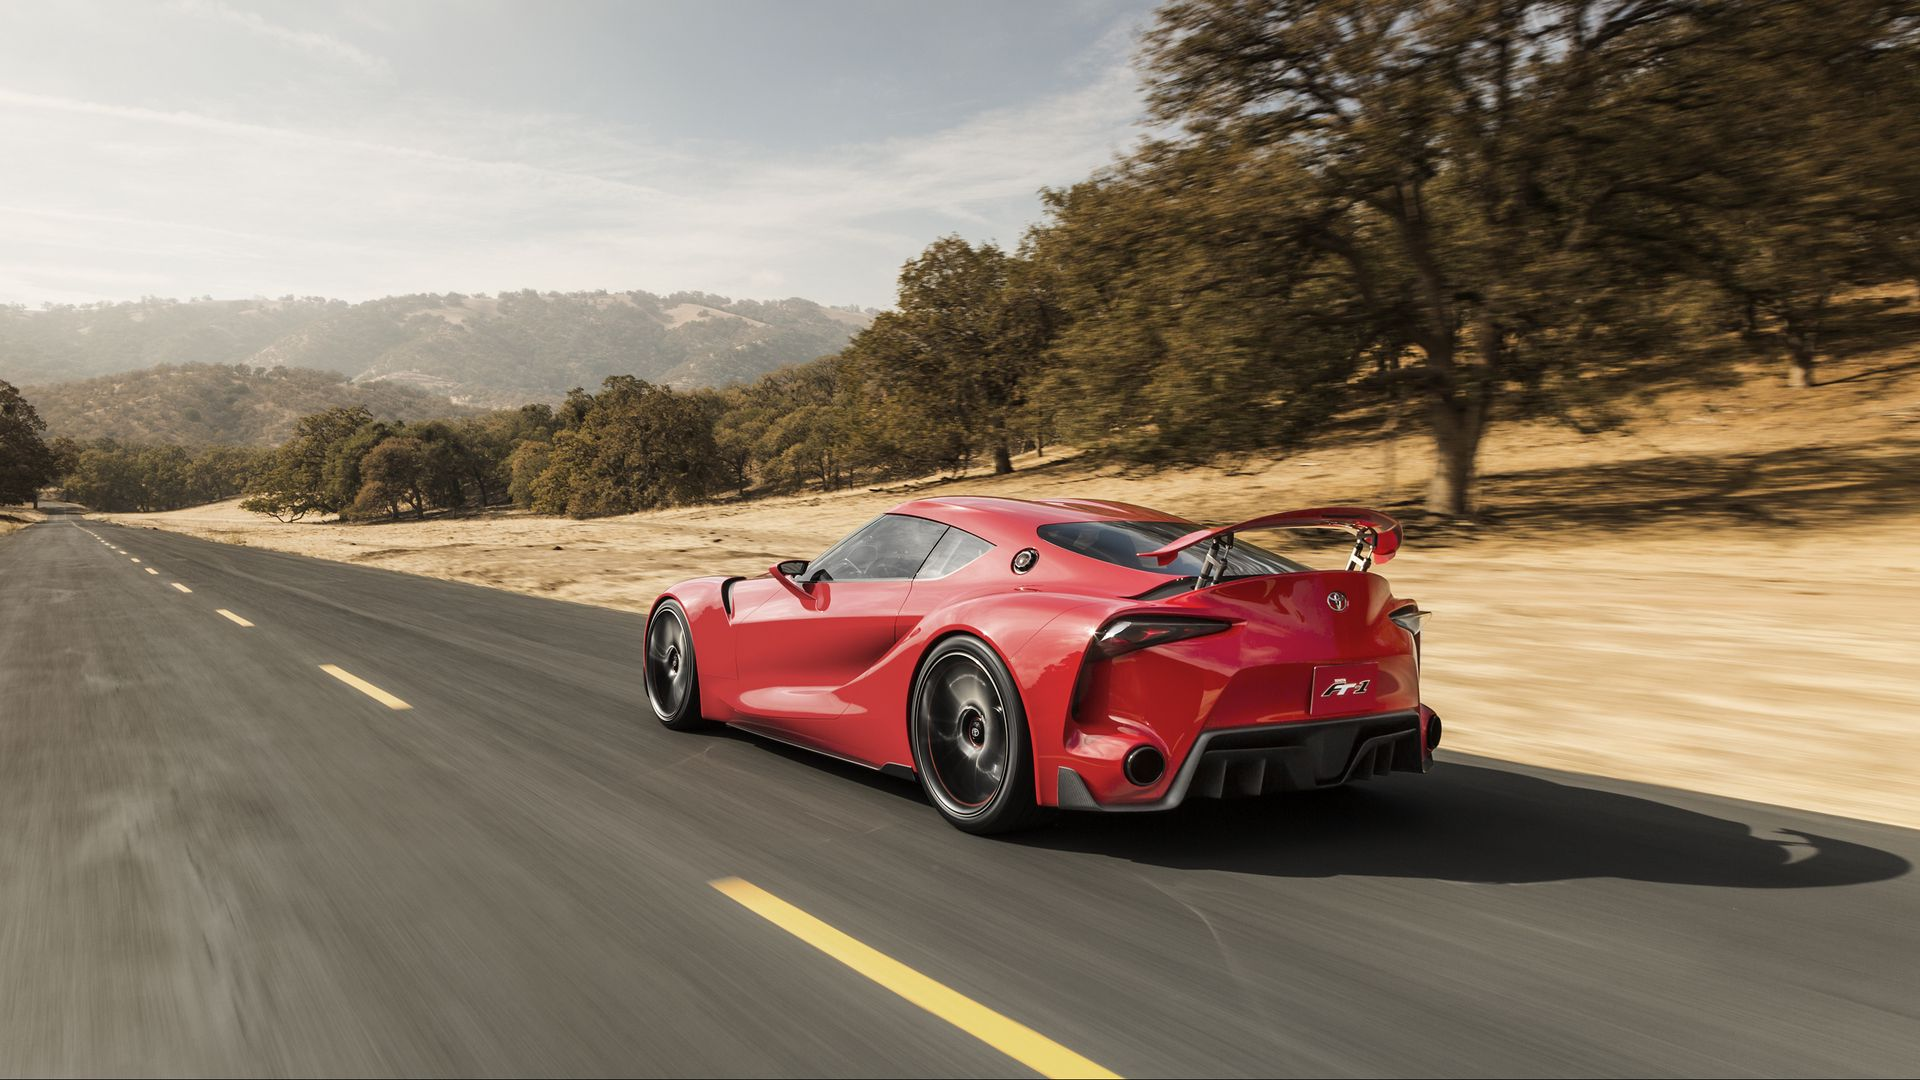 Toyota FT1, Concept Car Wallpapers Free Download